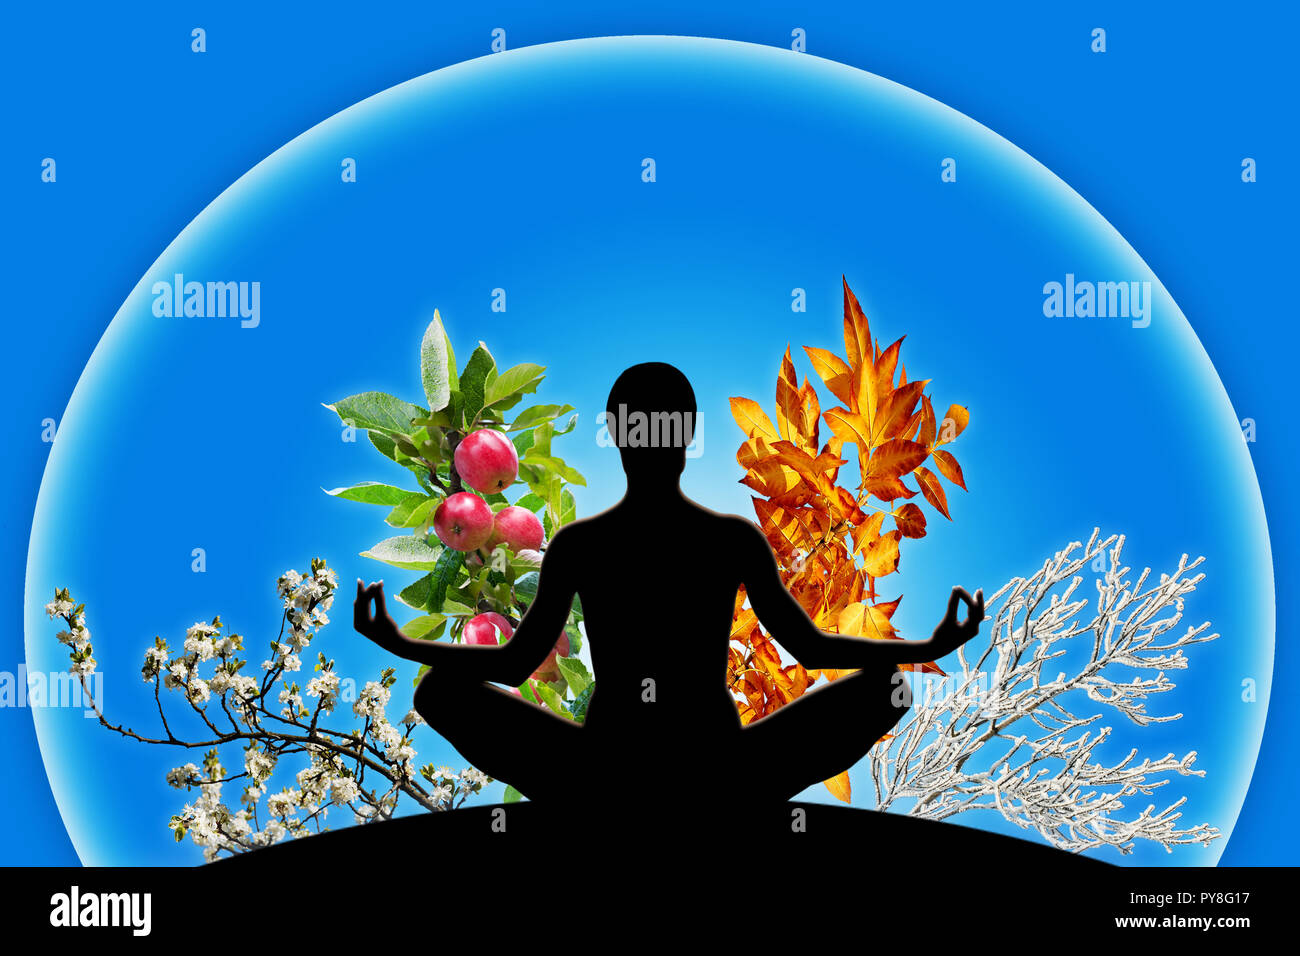 Female yoga figure in a sphere with 4 different branches, representing 4 seasons of the year (spring, summer, autumn, winter). Concept of passing time - Stock Image